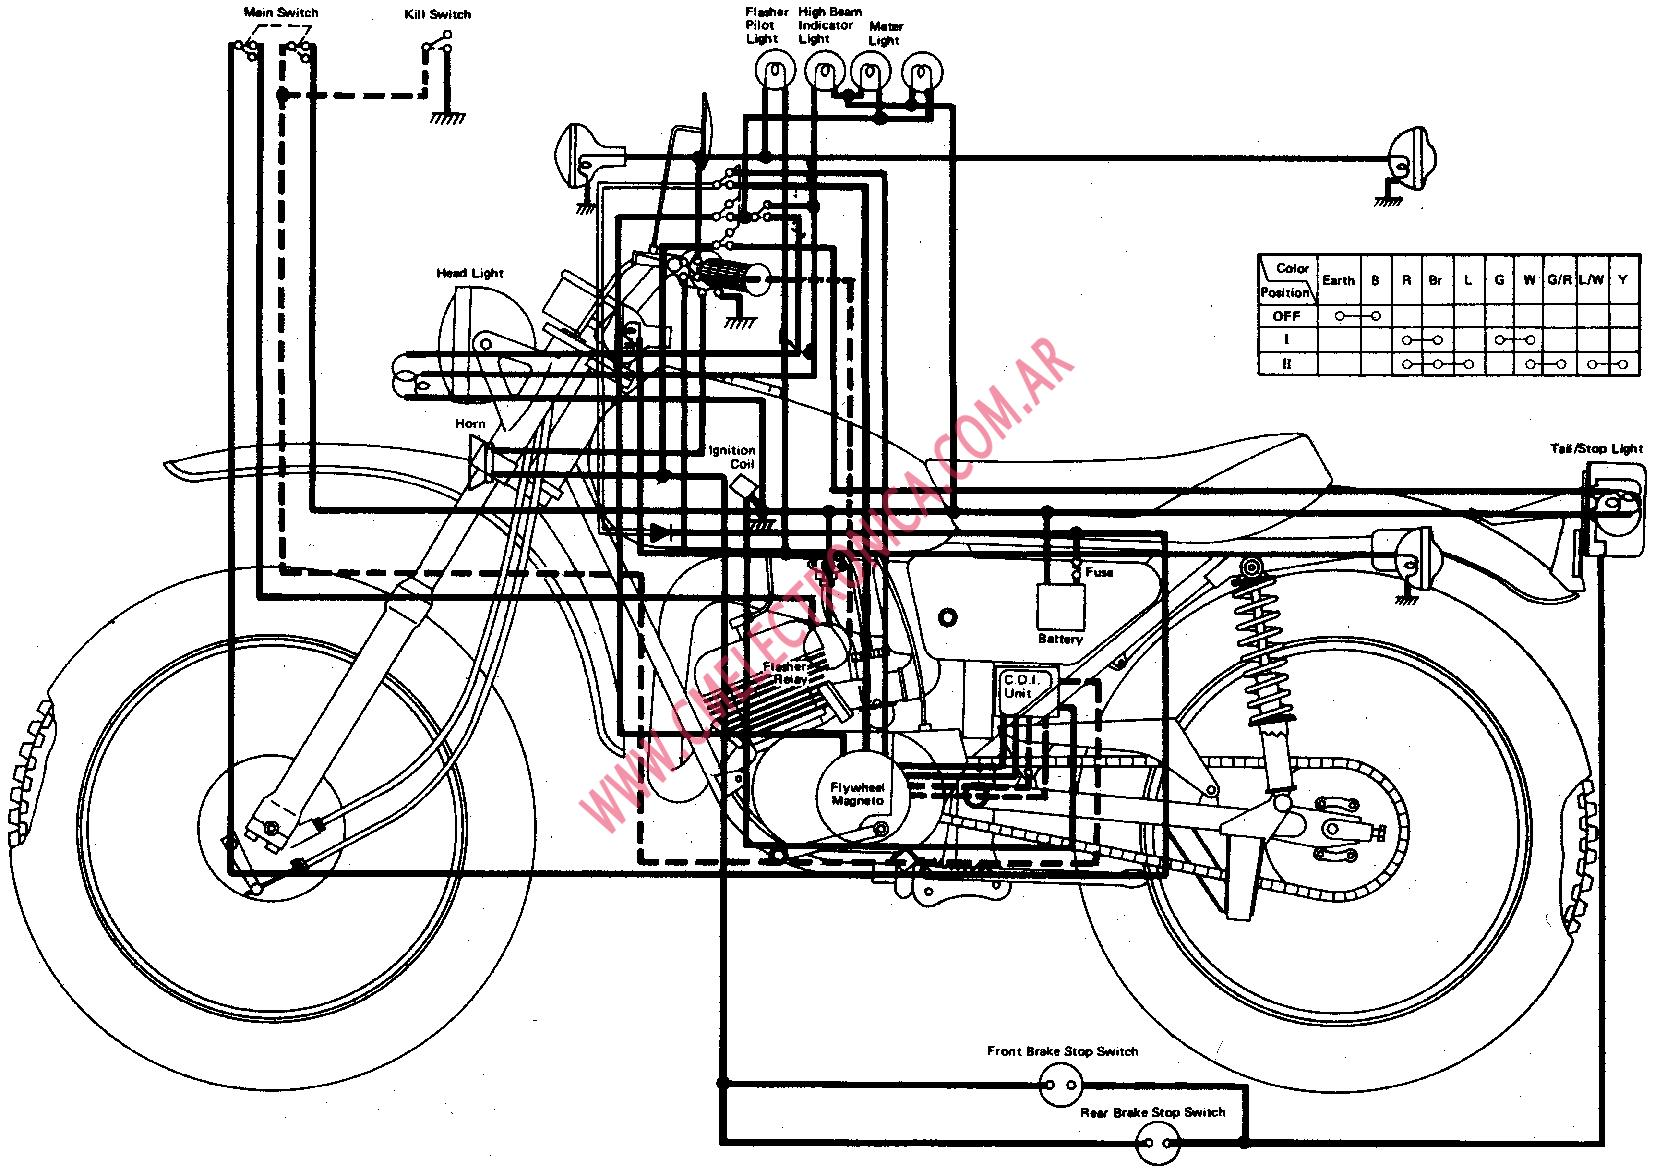 1974 Yamaha Dt175-a Color Wiring Diagram